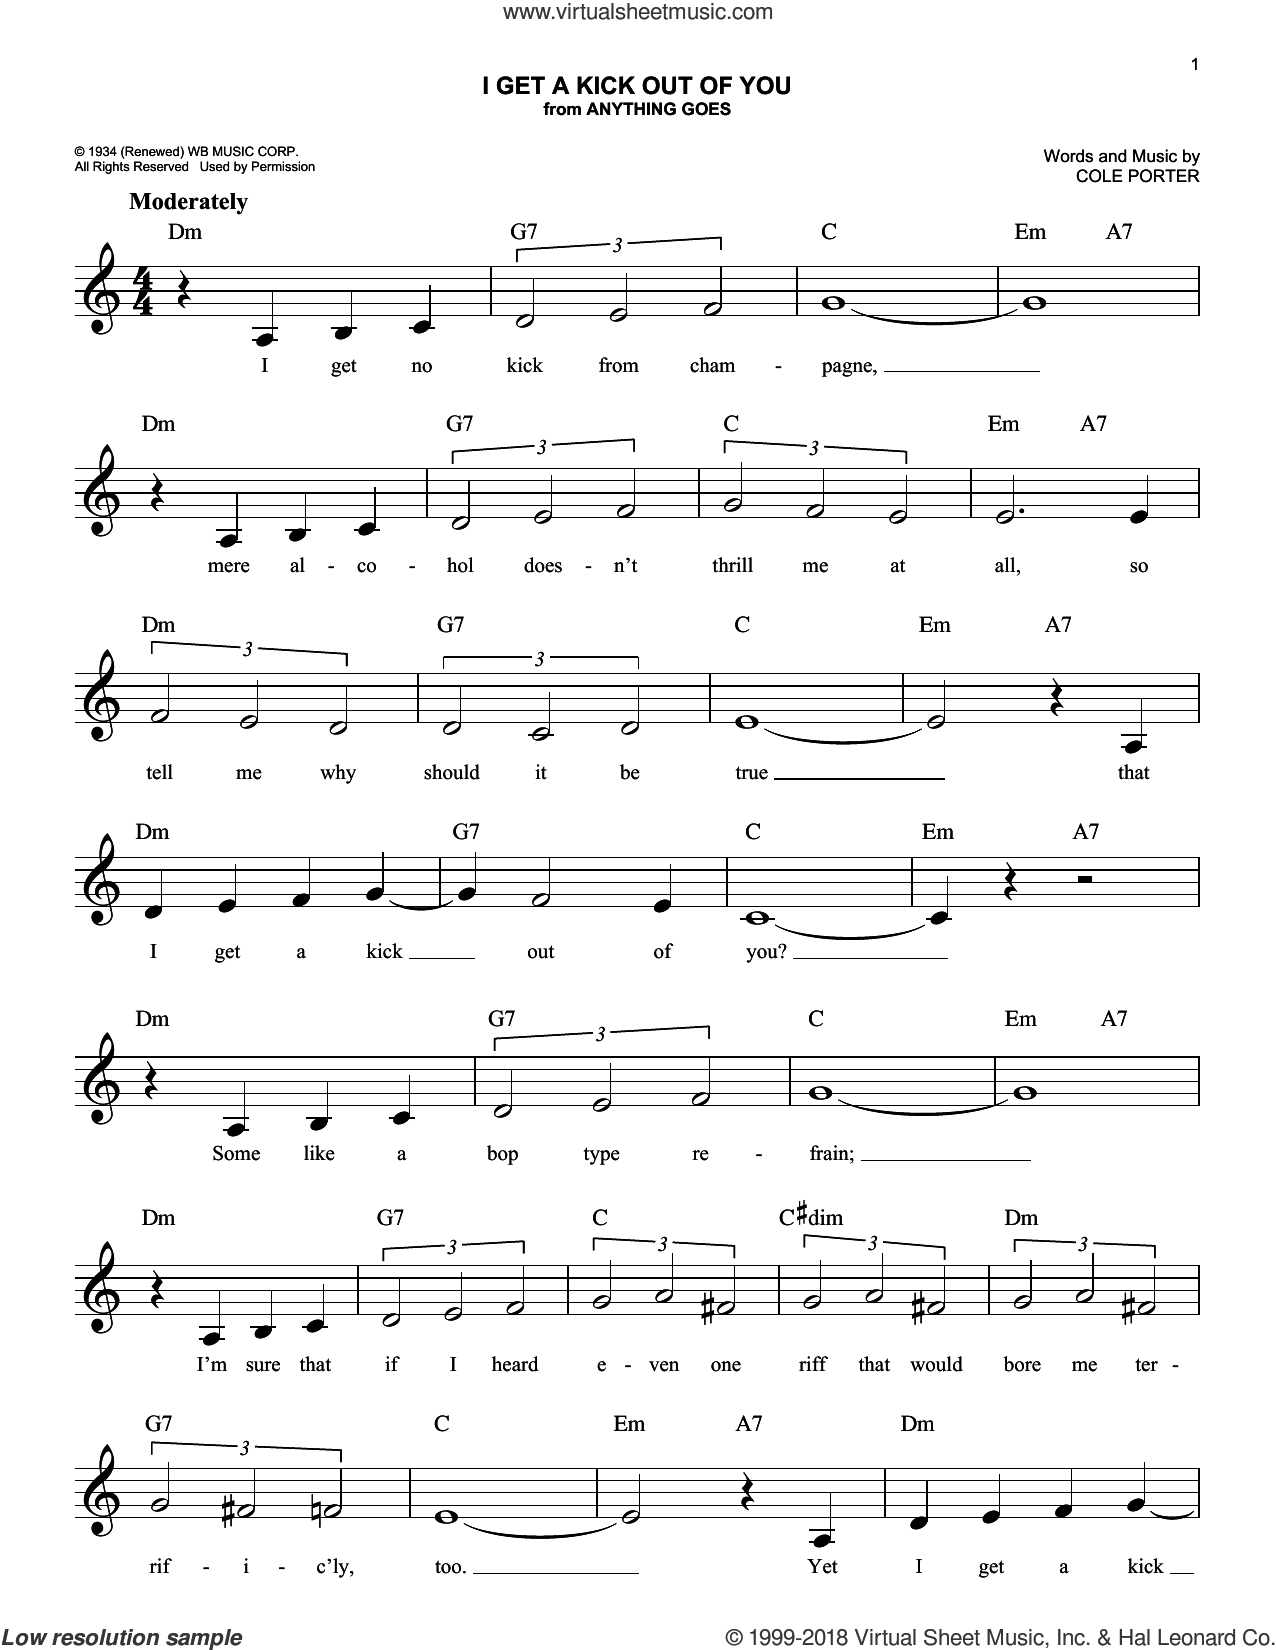 I Get A Kick Out Of You sheet music for voice and other instruments (fake book) by Frank Sinatra and Cole Porter, intermediate skill level